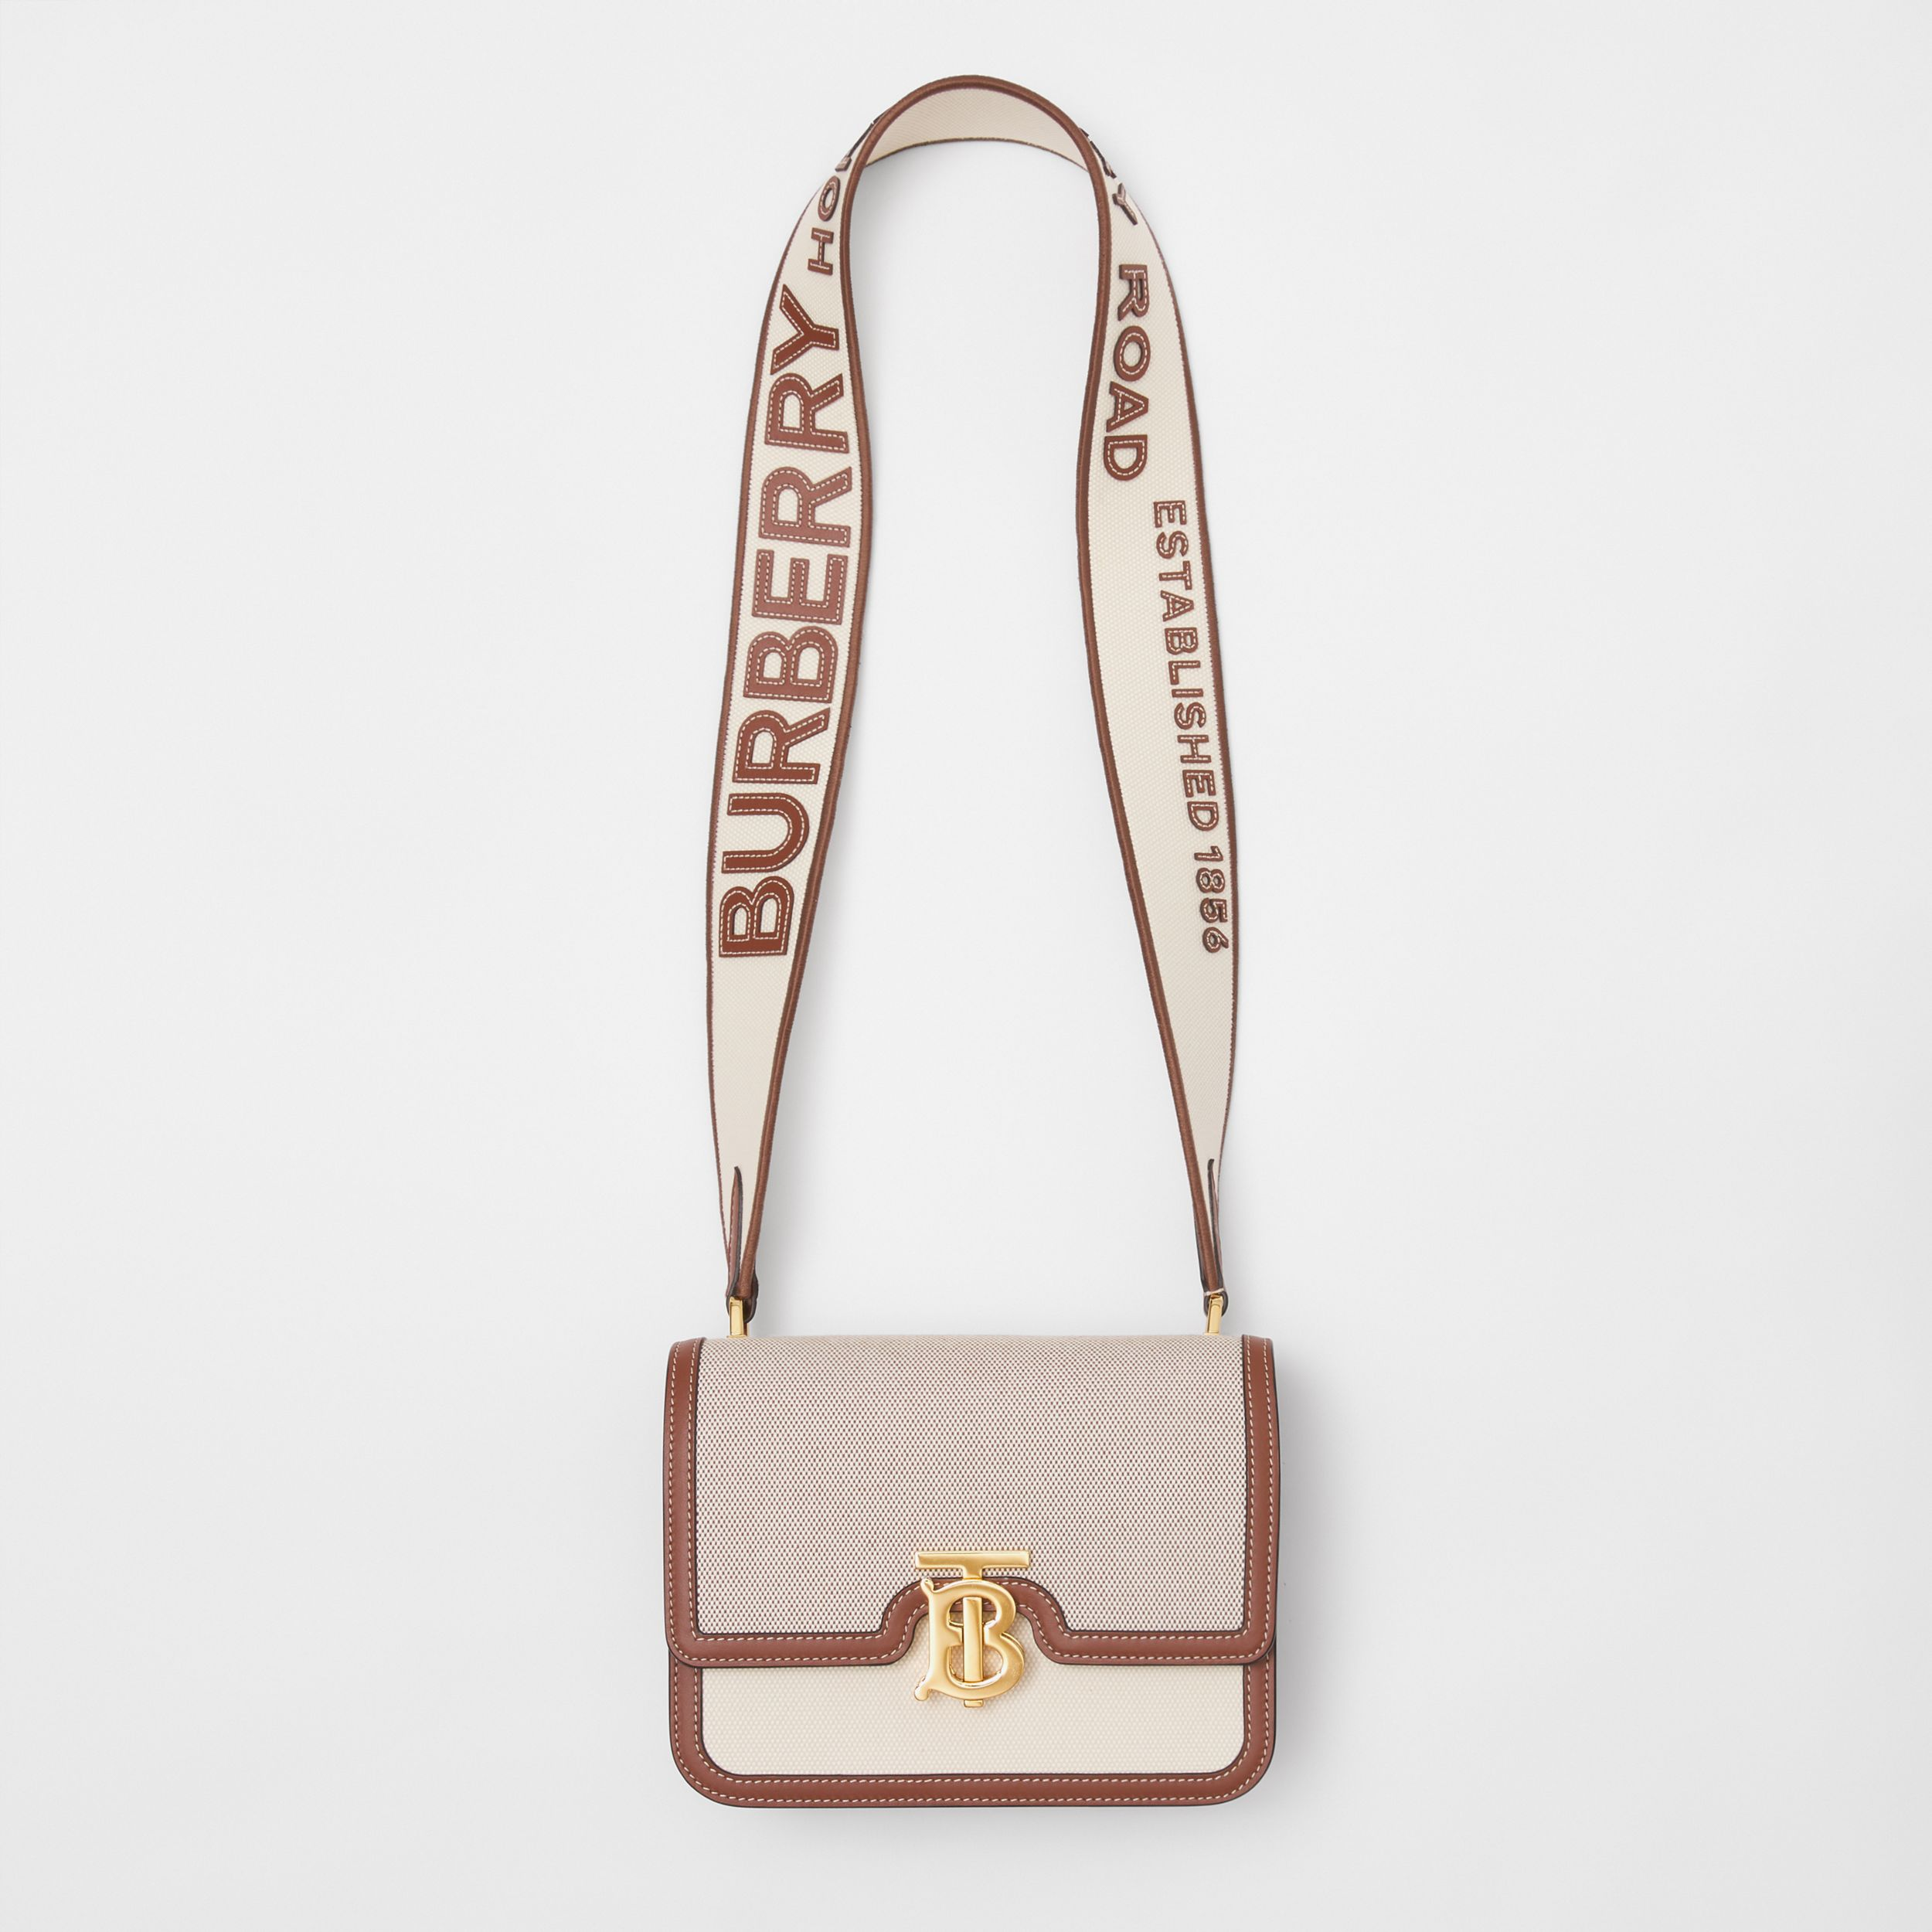 Small Cotton Canvas and Leather TB Bag in Soft Fawn/ecru - Women | Burberry - 4